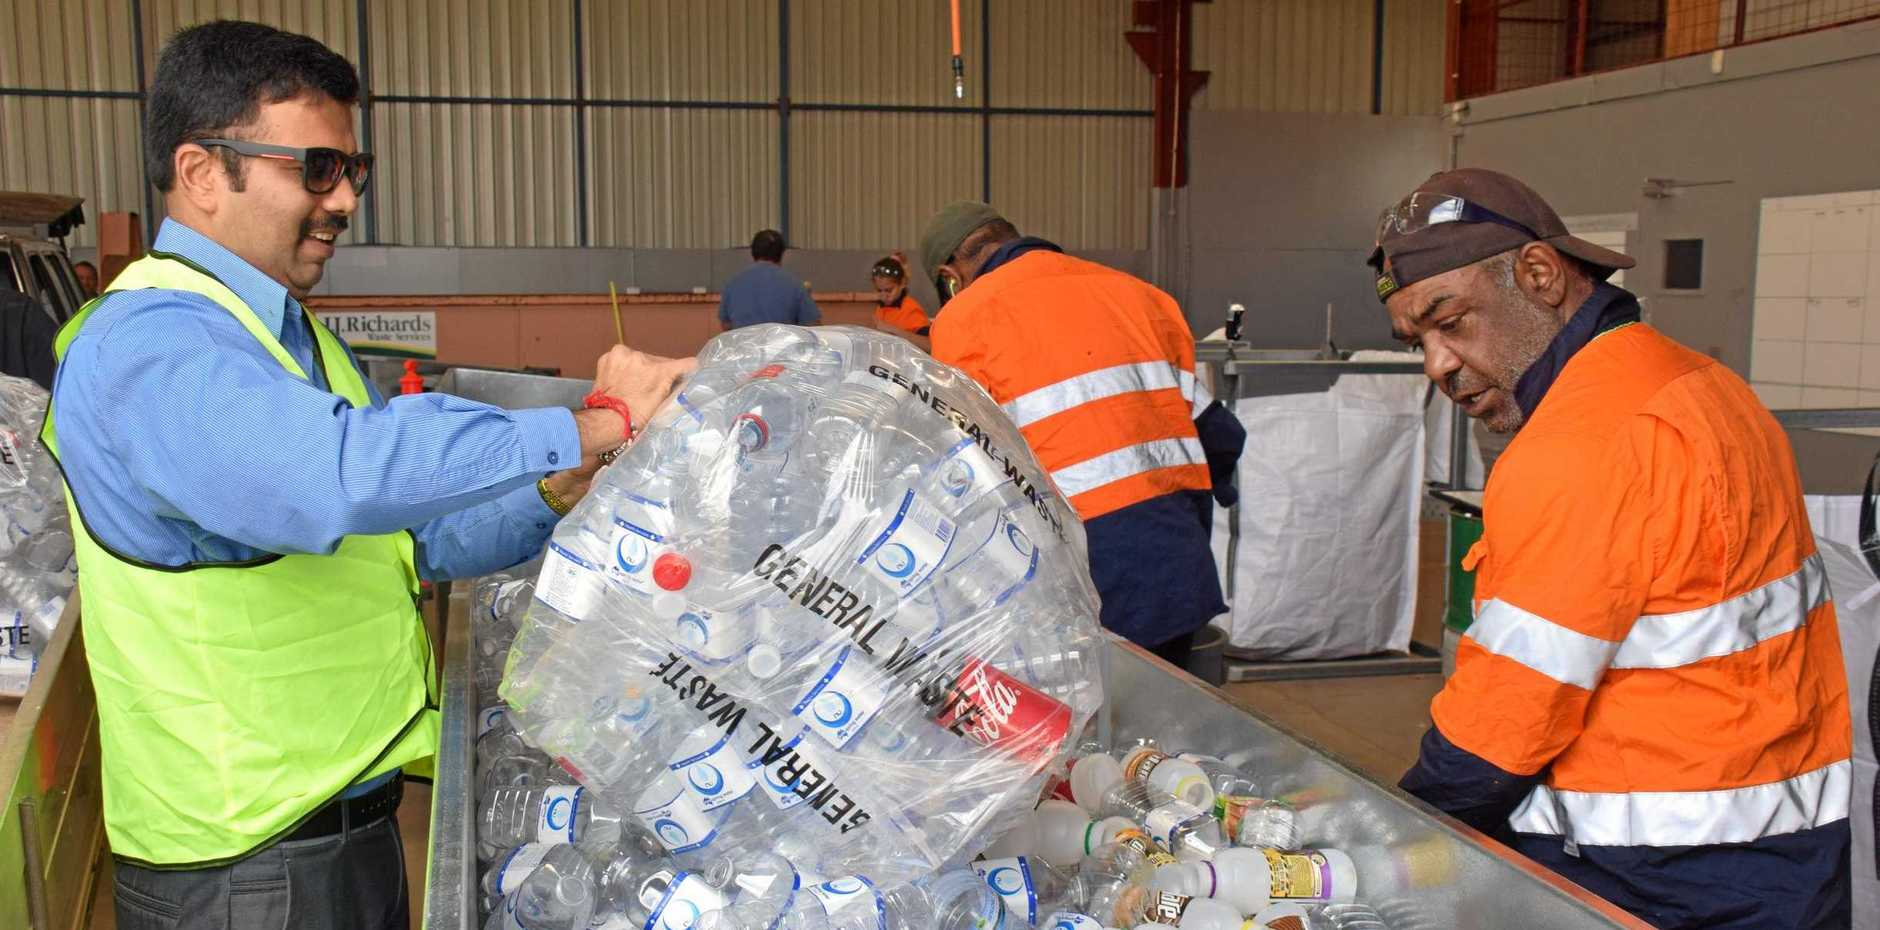 MAKING CHANGE: The new depot has had a busy start in Kingaroy.